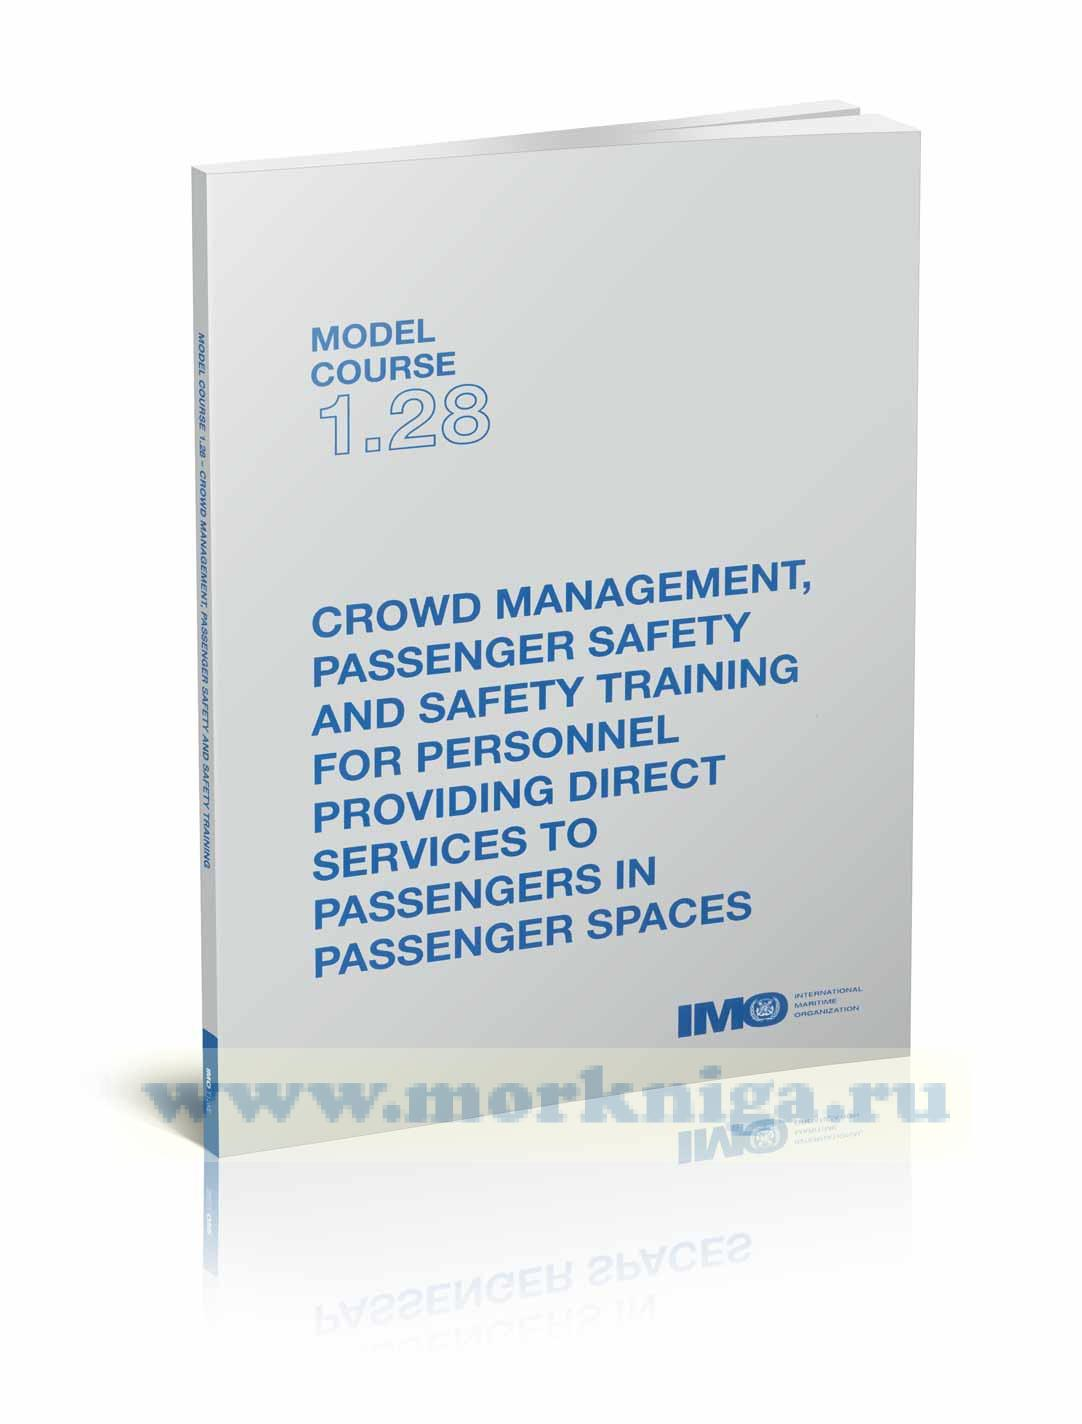 Crowd management, passenger safety and safety training for personnel providing direct services to passengers in passenger spaces. Model course 1.28